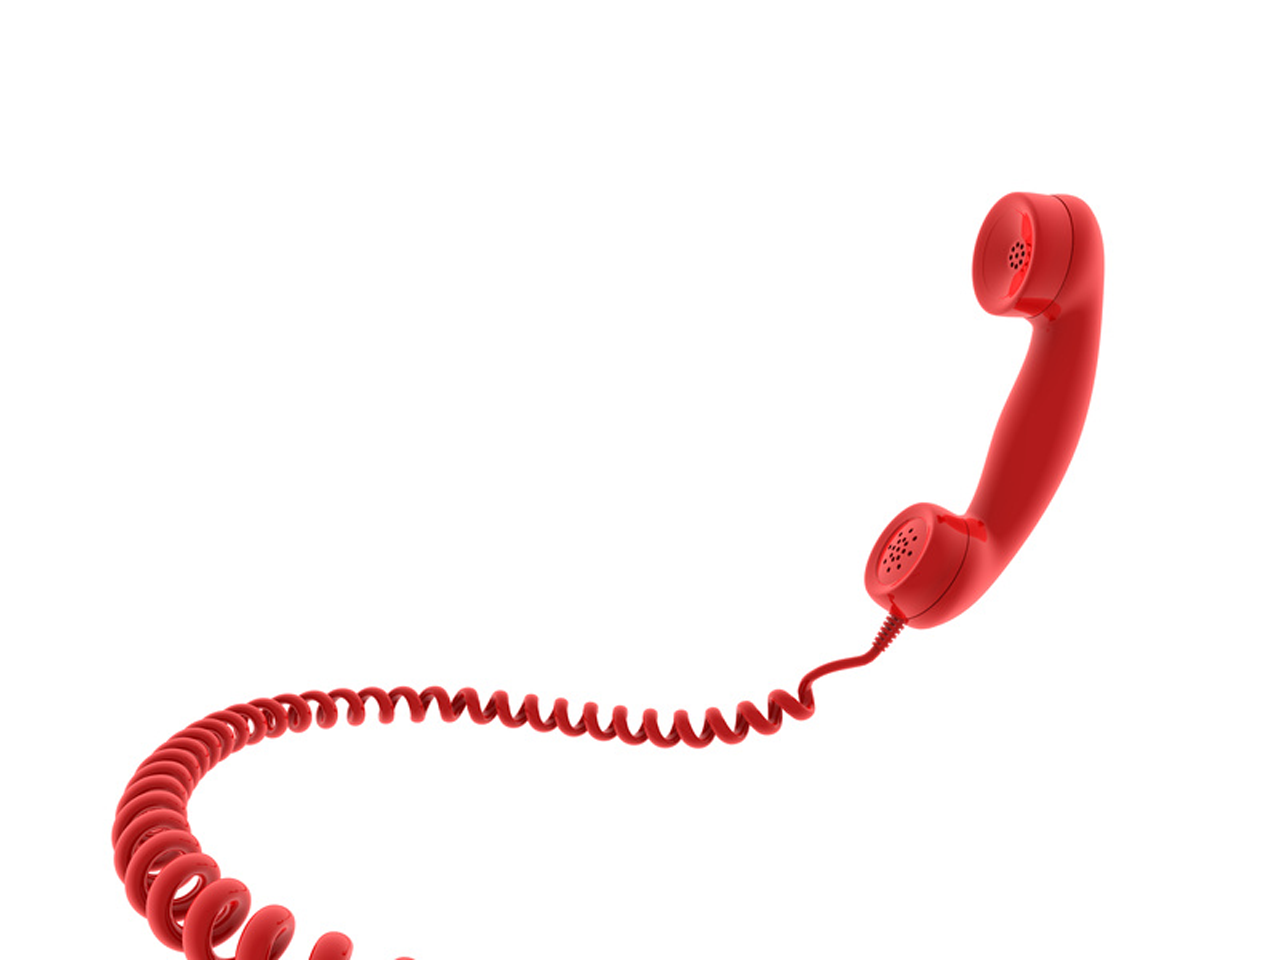 A red telephone receiver